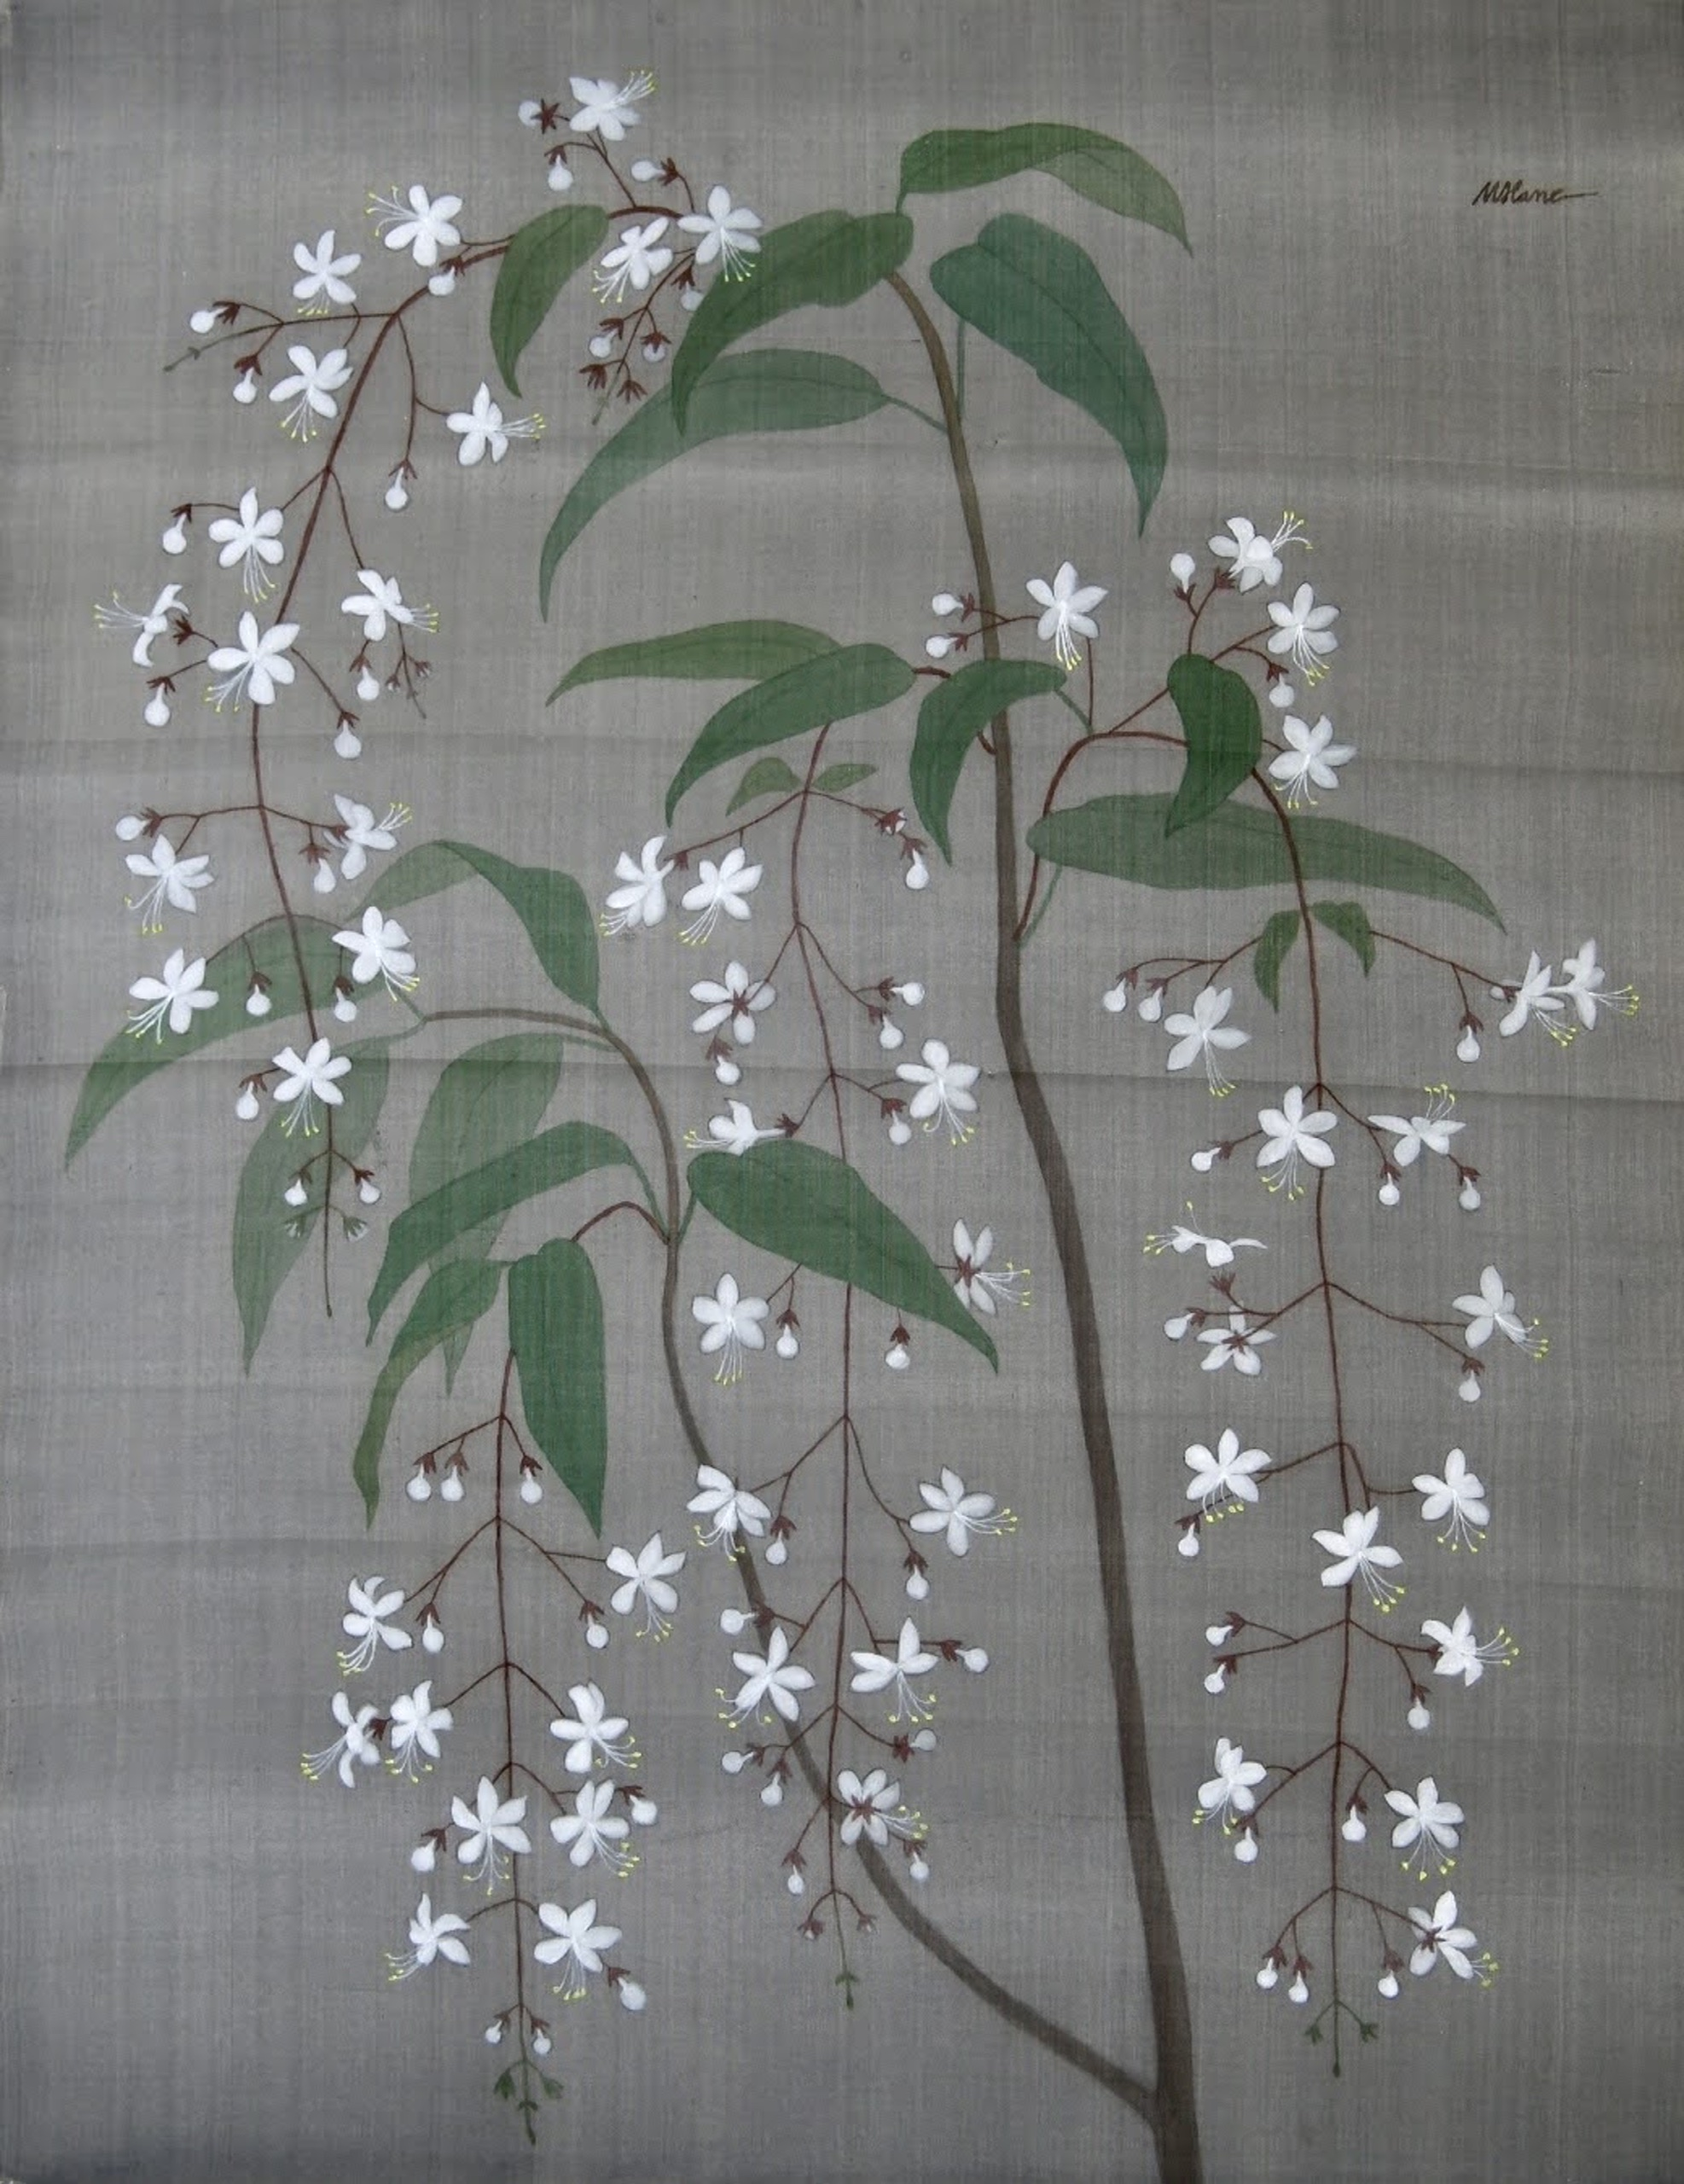 Nervilis plicata, silk painting, 60cmx88cm by the artist Hoang Minh Hang in a supplied photo.